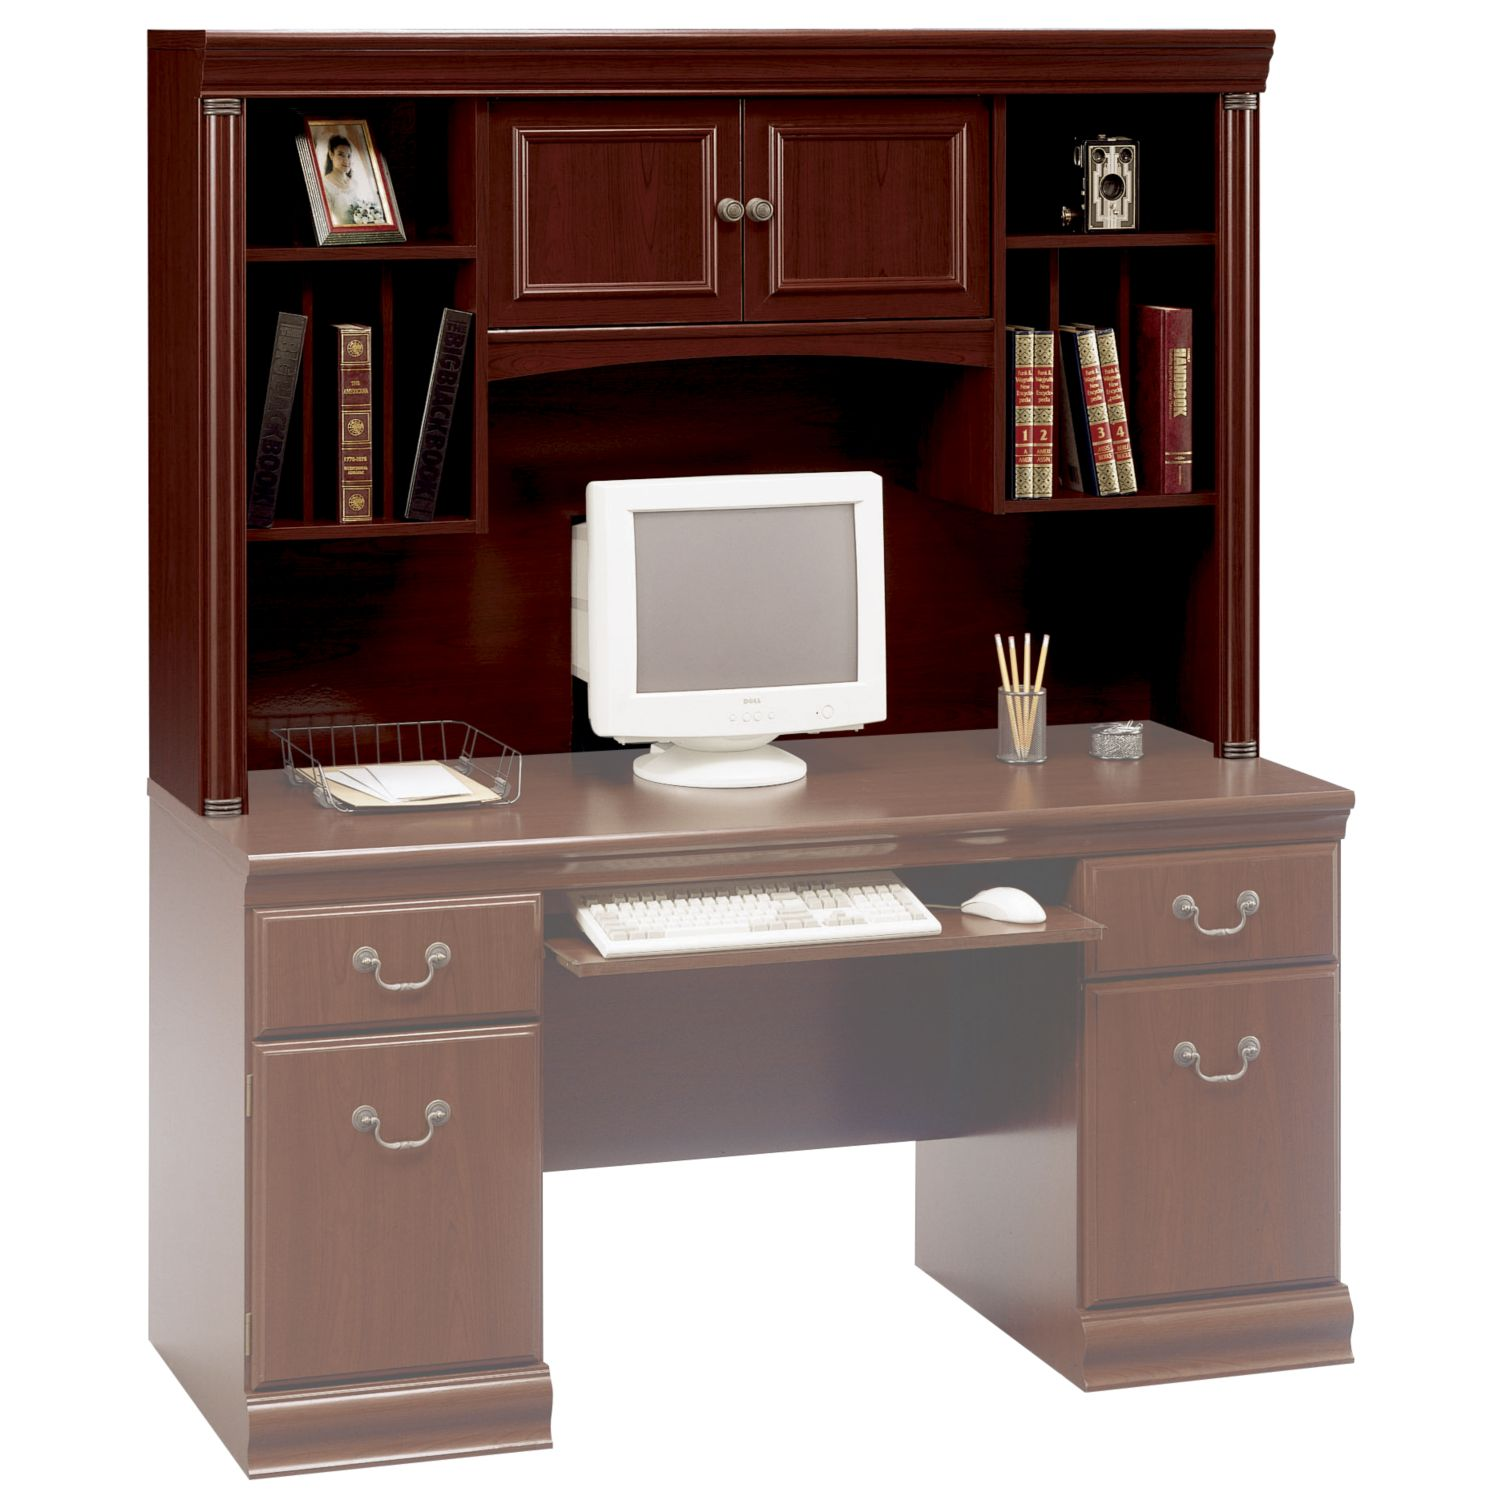 "Bush Birmingham 40.5""H x 60.625""W x 13.875""D Executive Hutch - Harvest Cherry"